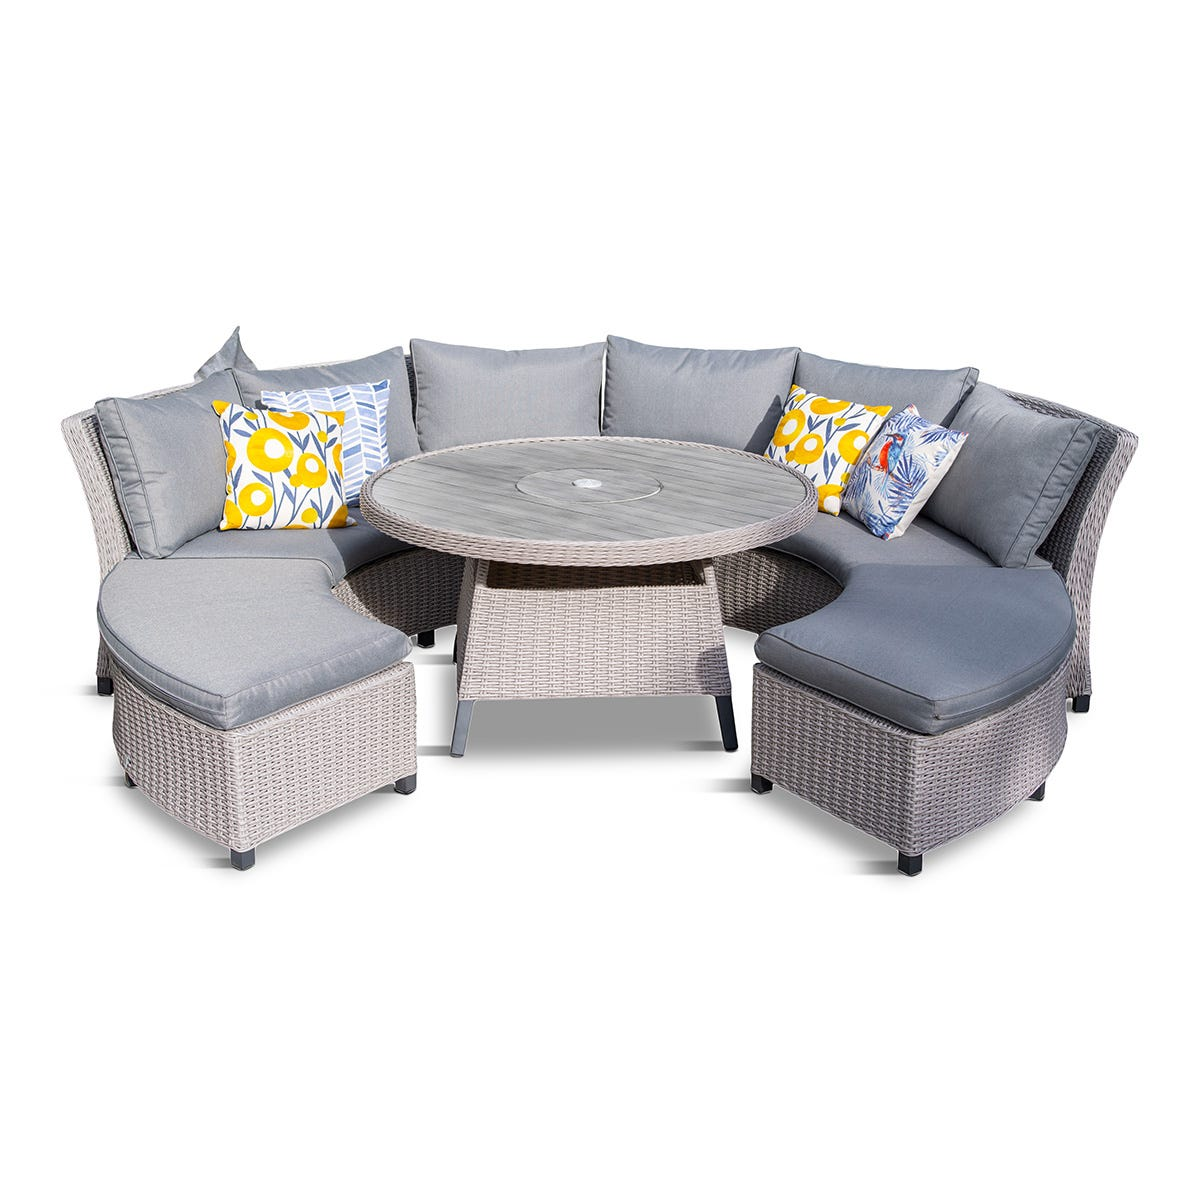 LG Outdoor Oslo Curved Dining Modular Set with Charcoal Firepit/Ice Bucket Table